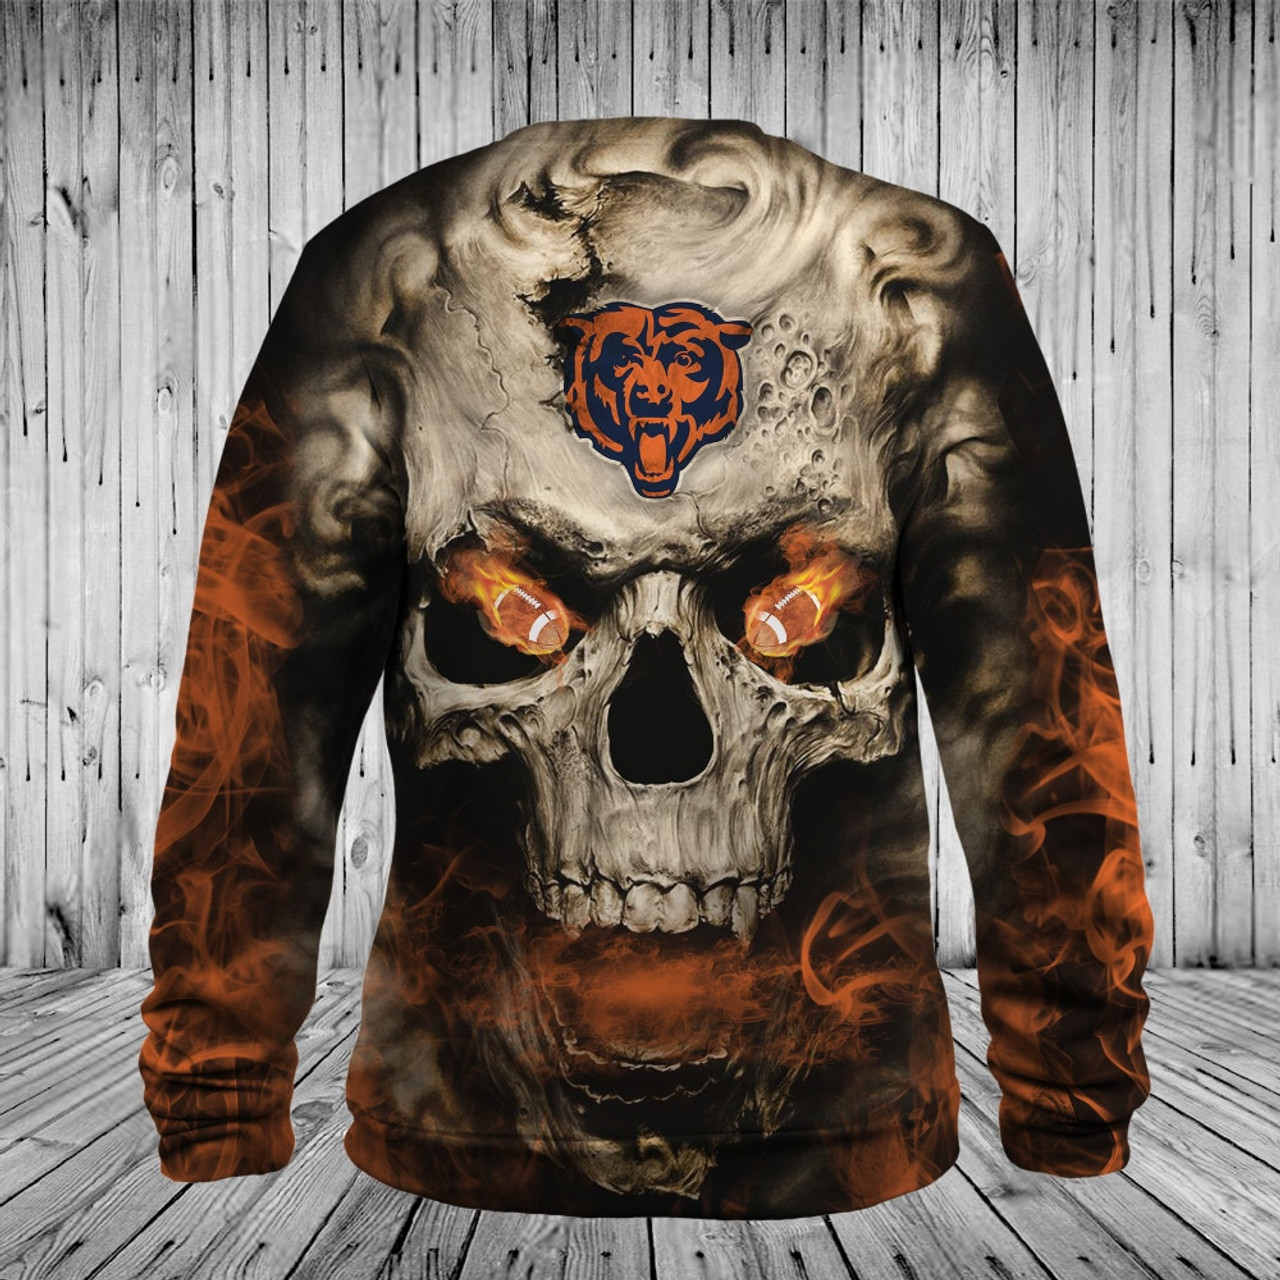 **(OFFICIAL-N.F.L.CHICAGO-BEARS-LOGO-LONG-SLEEVE-TEES/3D-NEON-SMOKING-SKULL & CHICAGO-BEARS-BLAZING-FOOTBALL/ON-FIRE-IN-SKULLS-EYES,PREMIUM-3D-CUSTOM-GRAPHIC-PRINTED/DOUBLE-SIDED-N.F.L.BEARS-TEAM-COLORED,WARM-LONG-SLEEVE-TRENDY-GAME-TEES)**